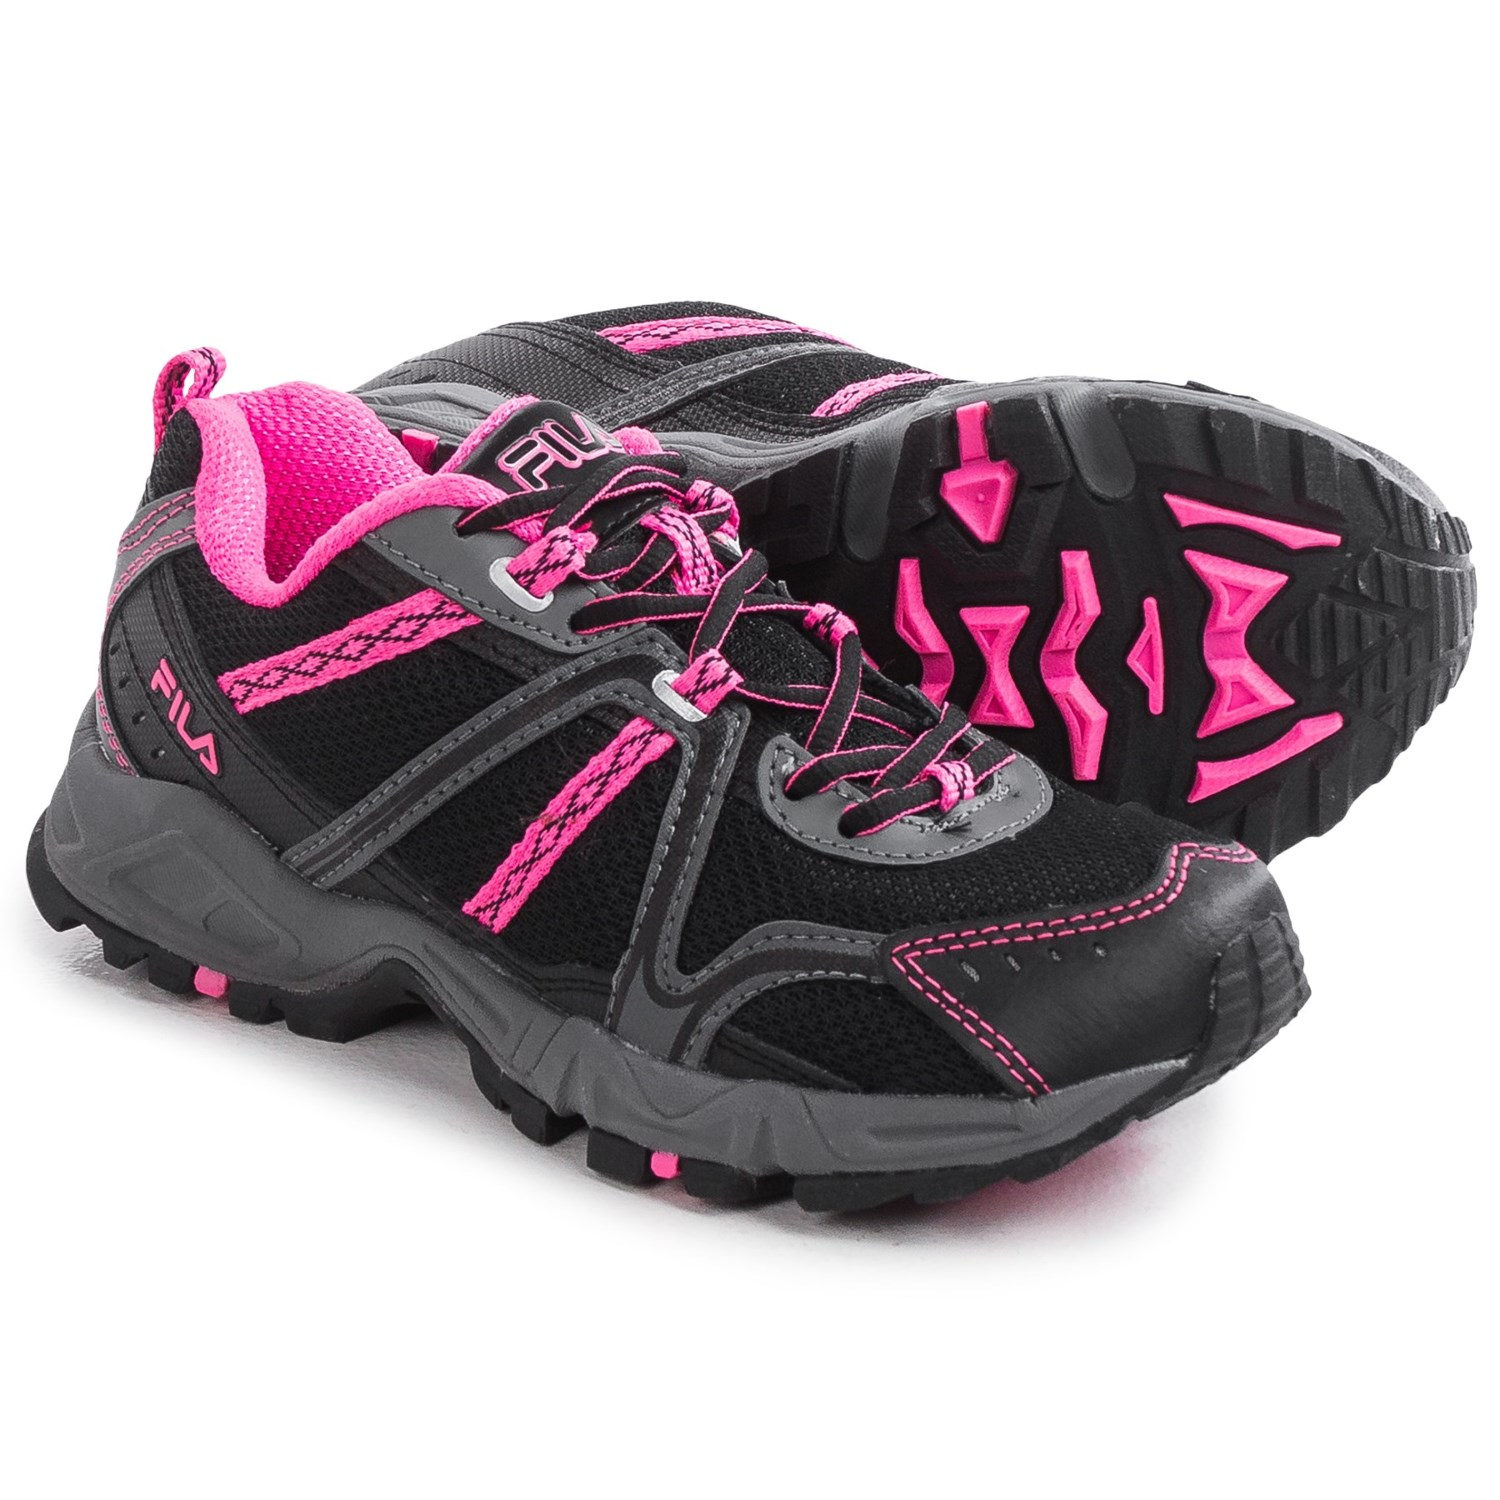 Dog Trail Running Shoes